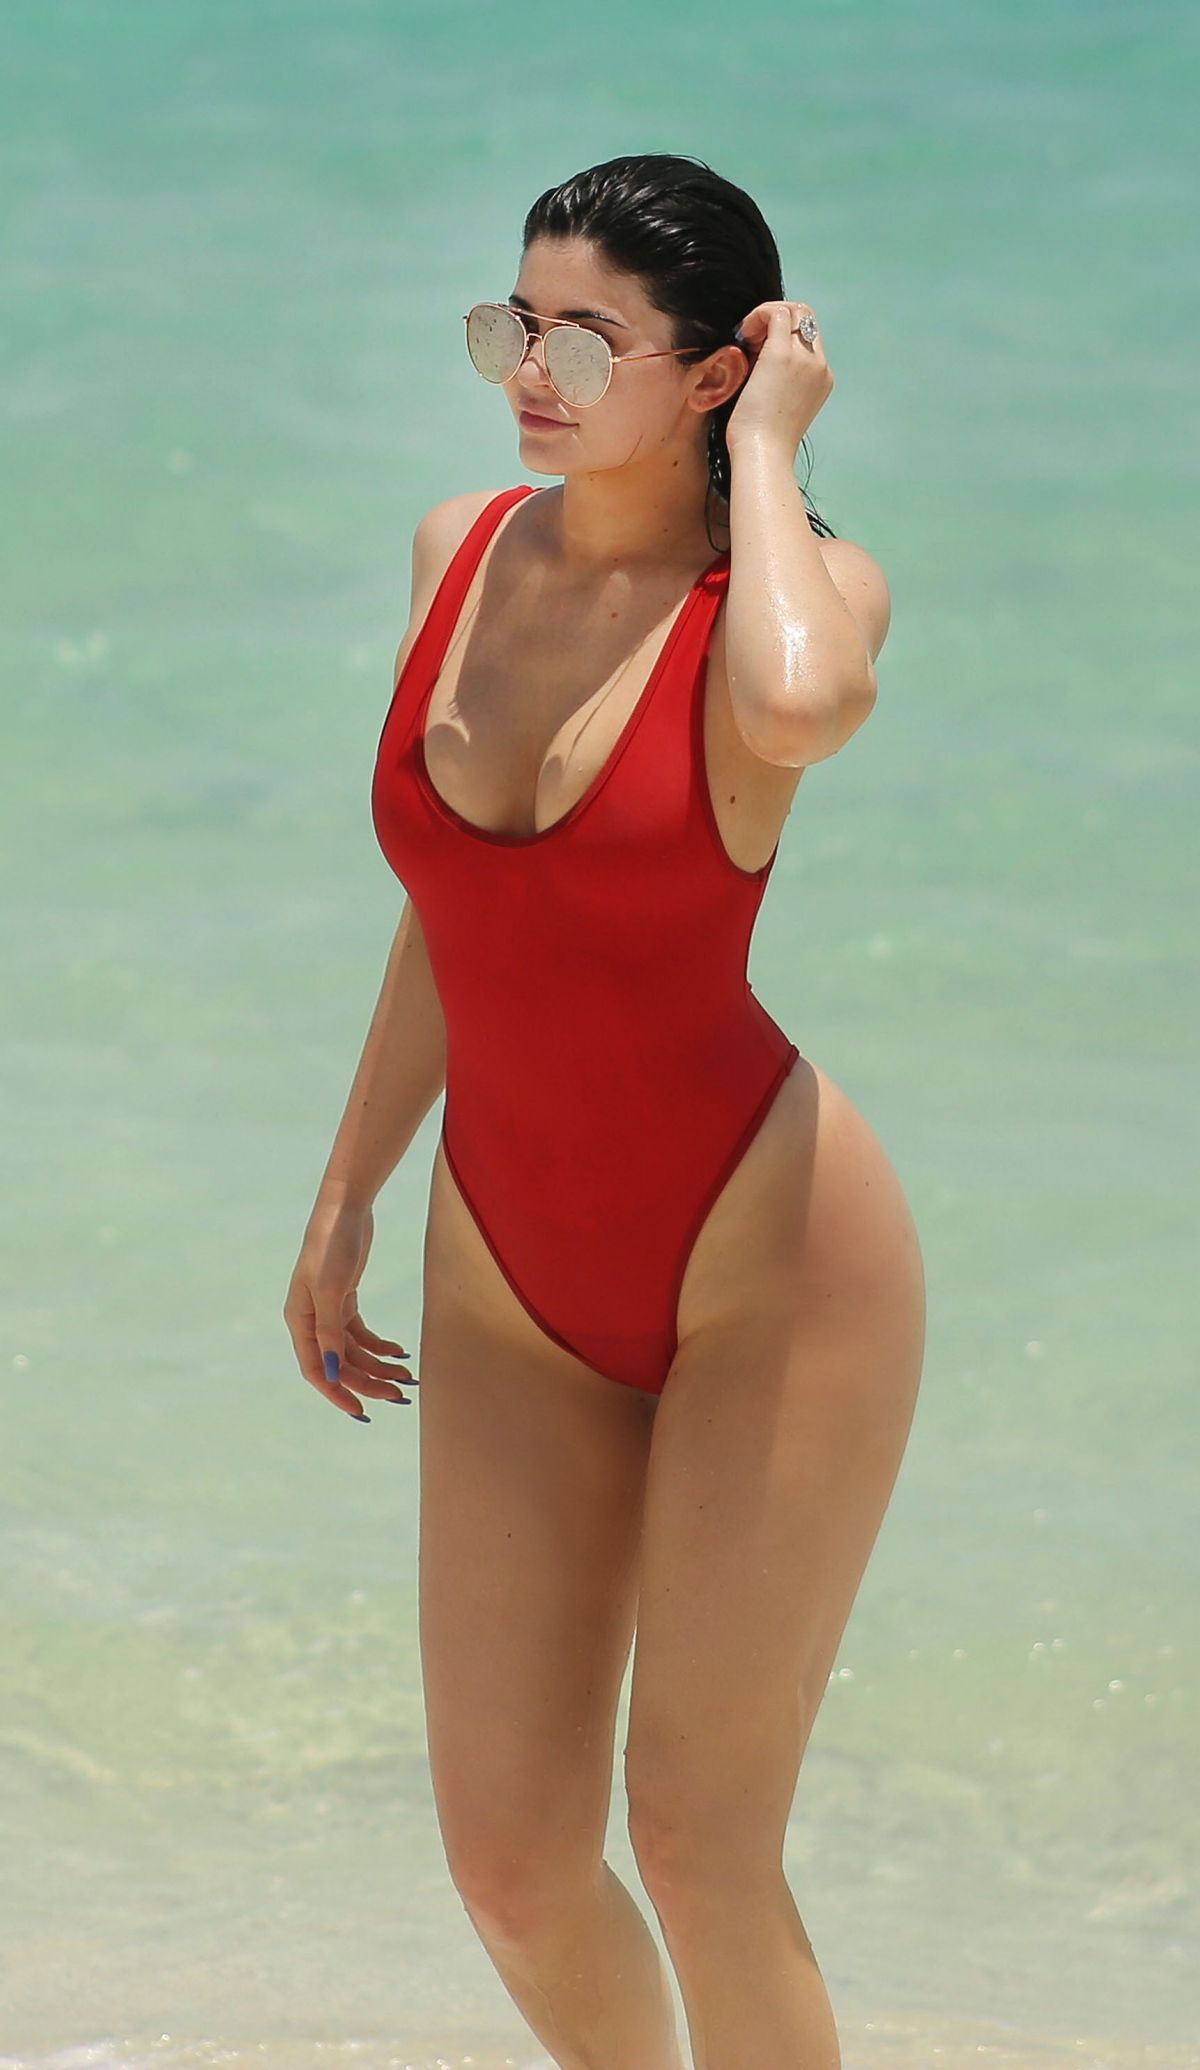 KYLIE JENNER in Swimsuit at a Beach in Turk and Caicos 08/12/2016